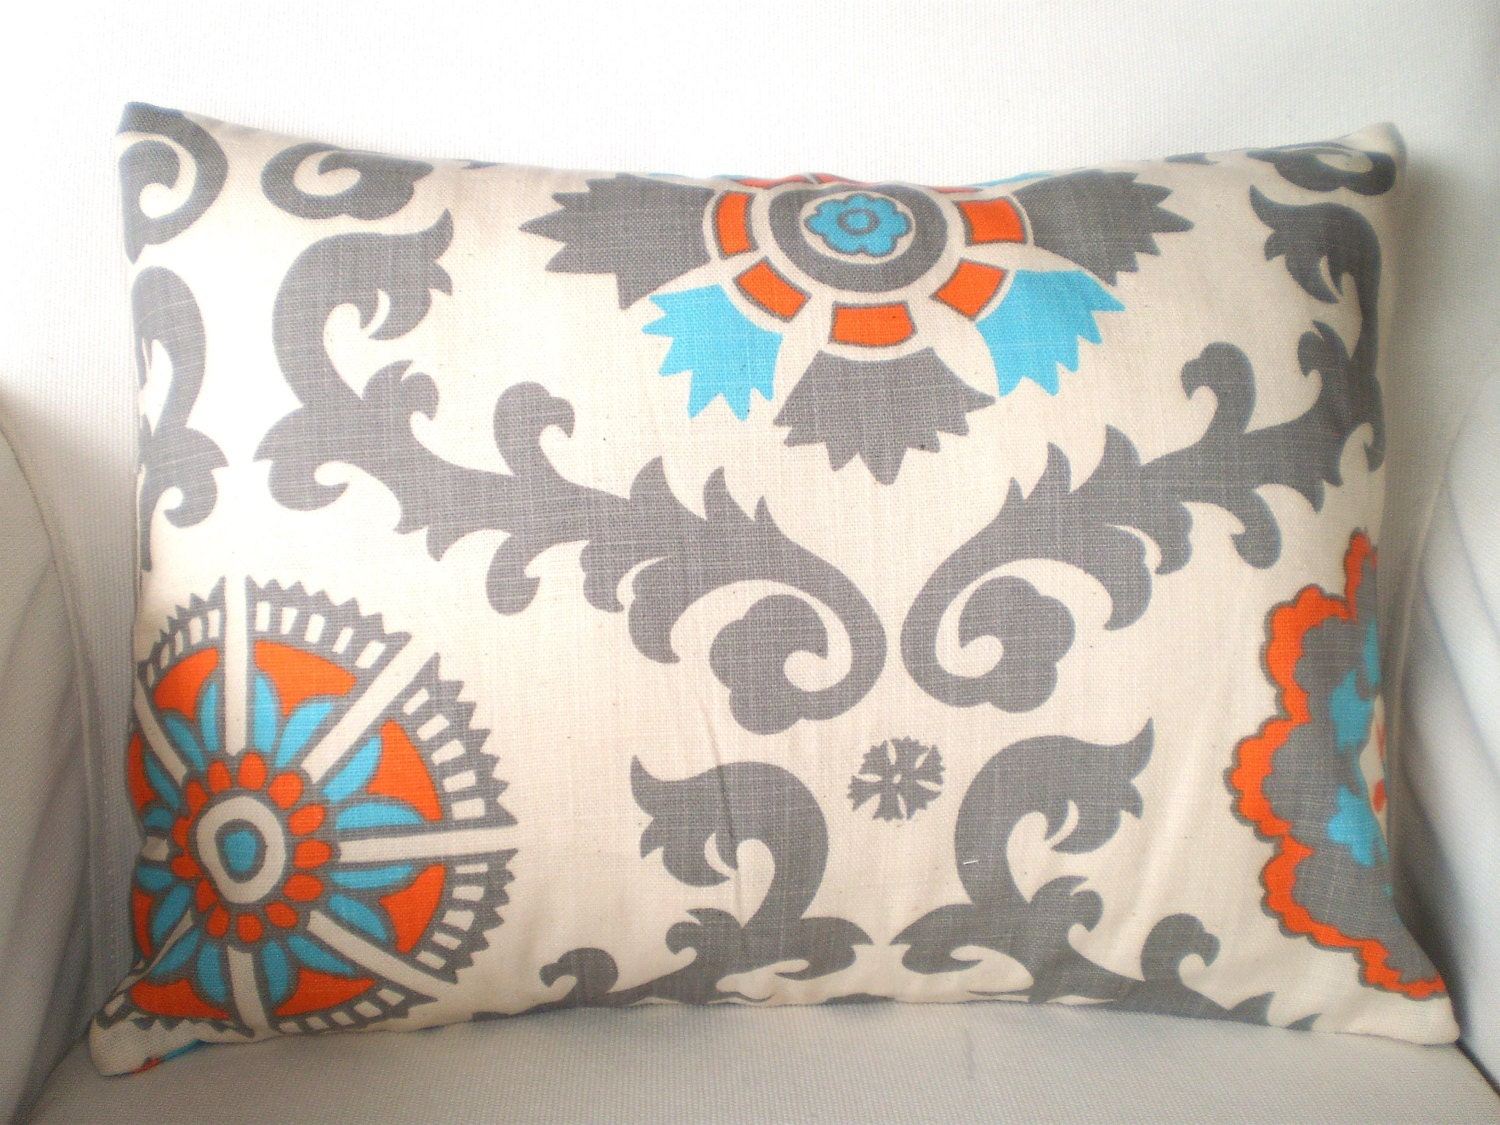 Throw Pillows With Orange : Aqua Orange Lumbar Throw Pillow Cover Cushion Orange Grey